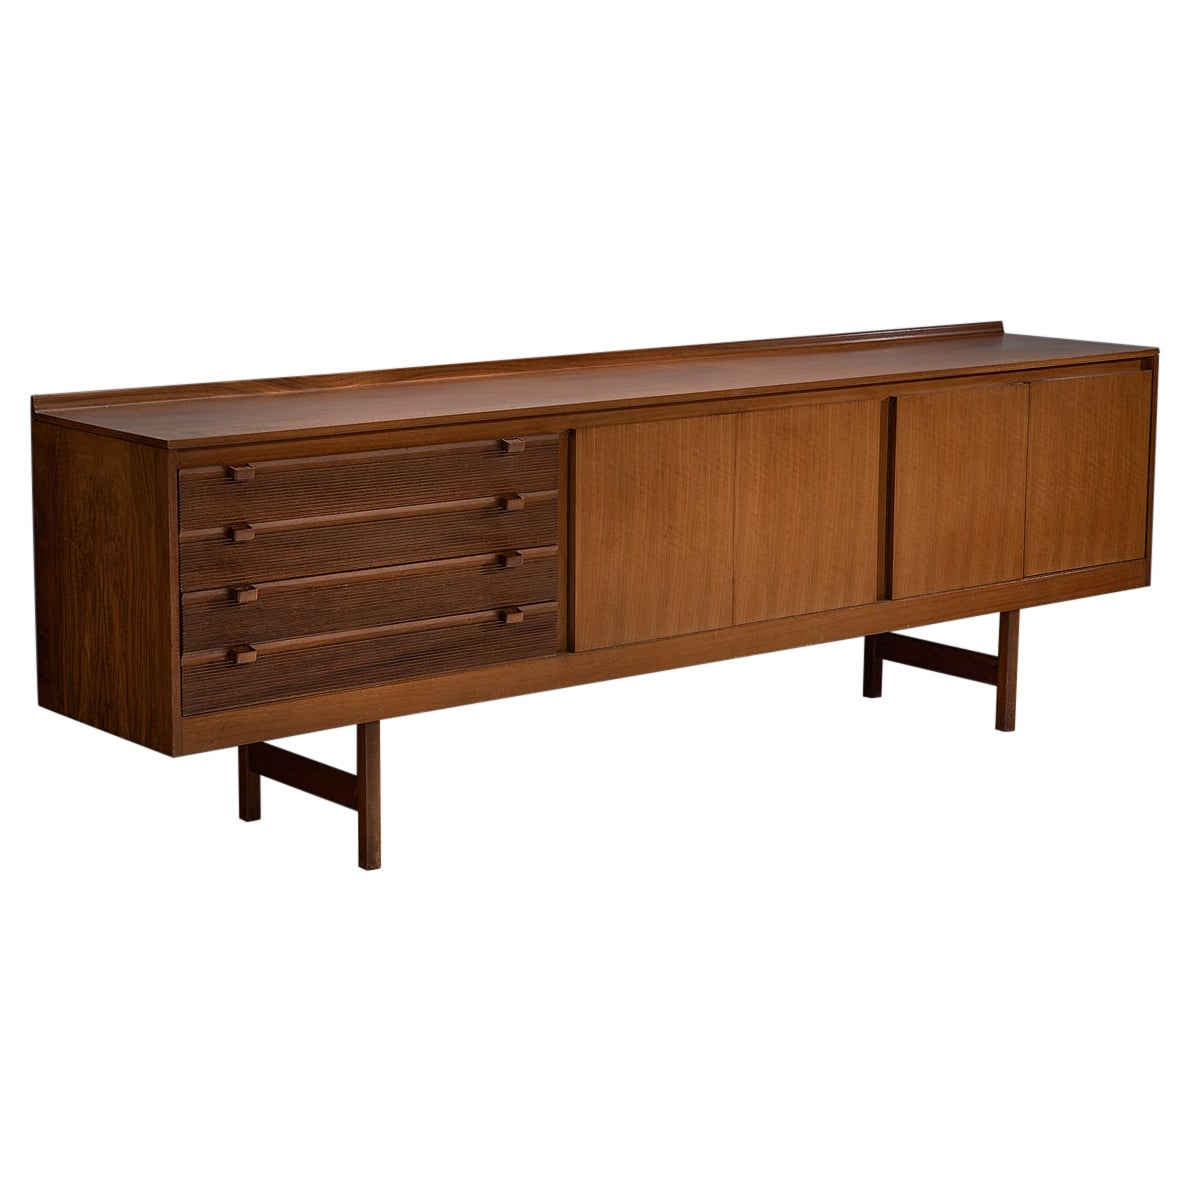 Robert Heritage for Archie Shine Sideboard in Walnut